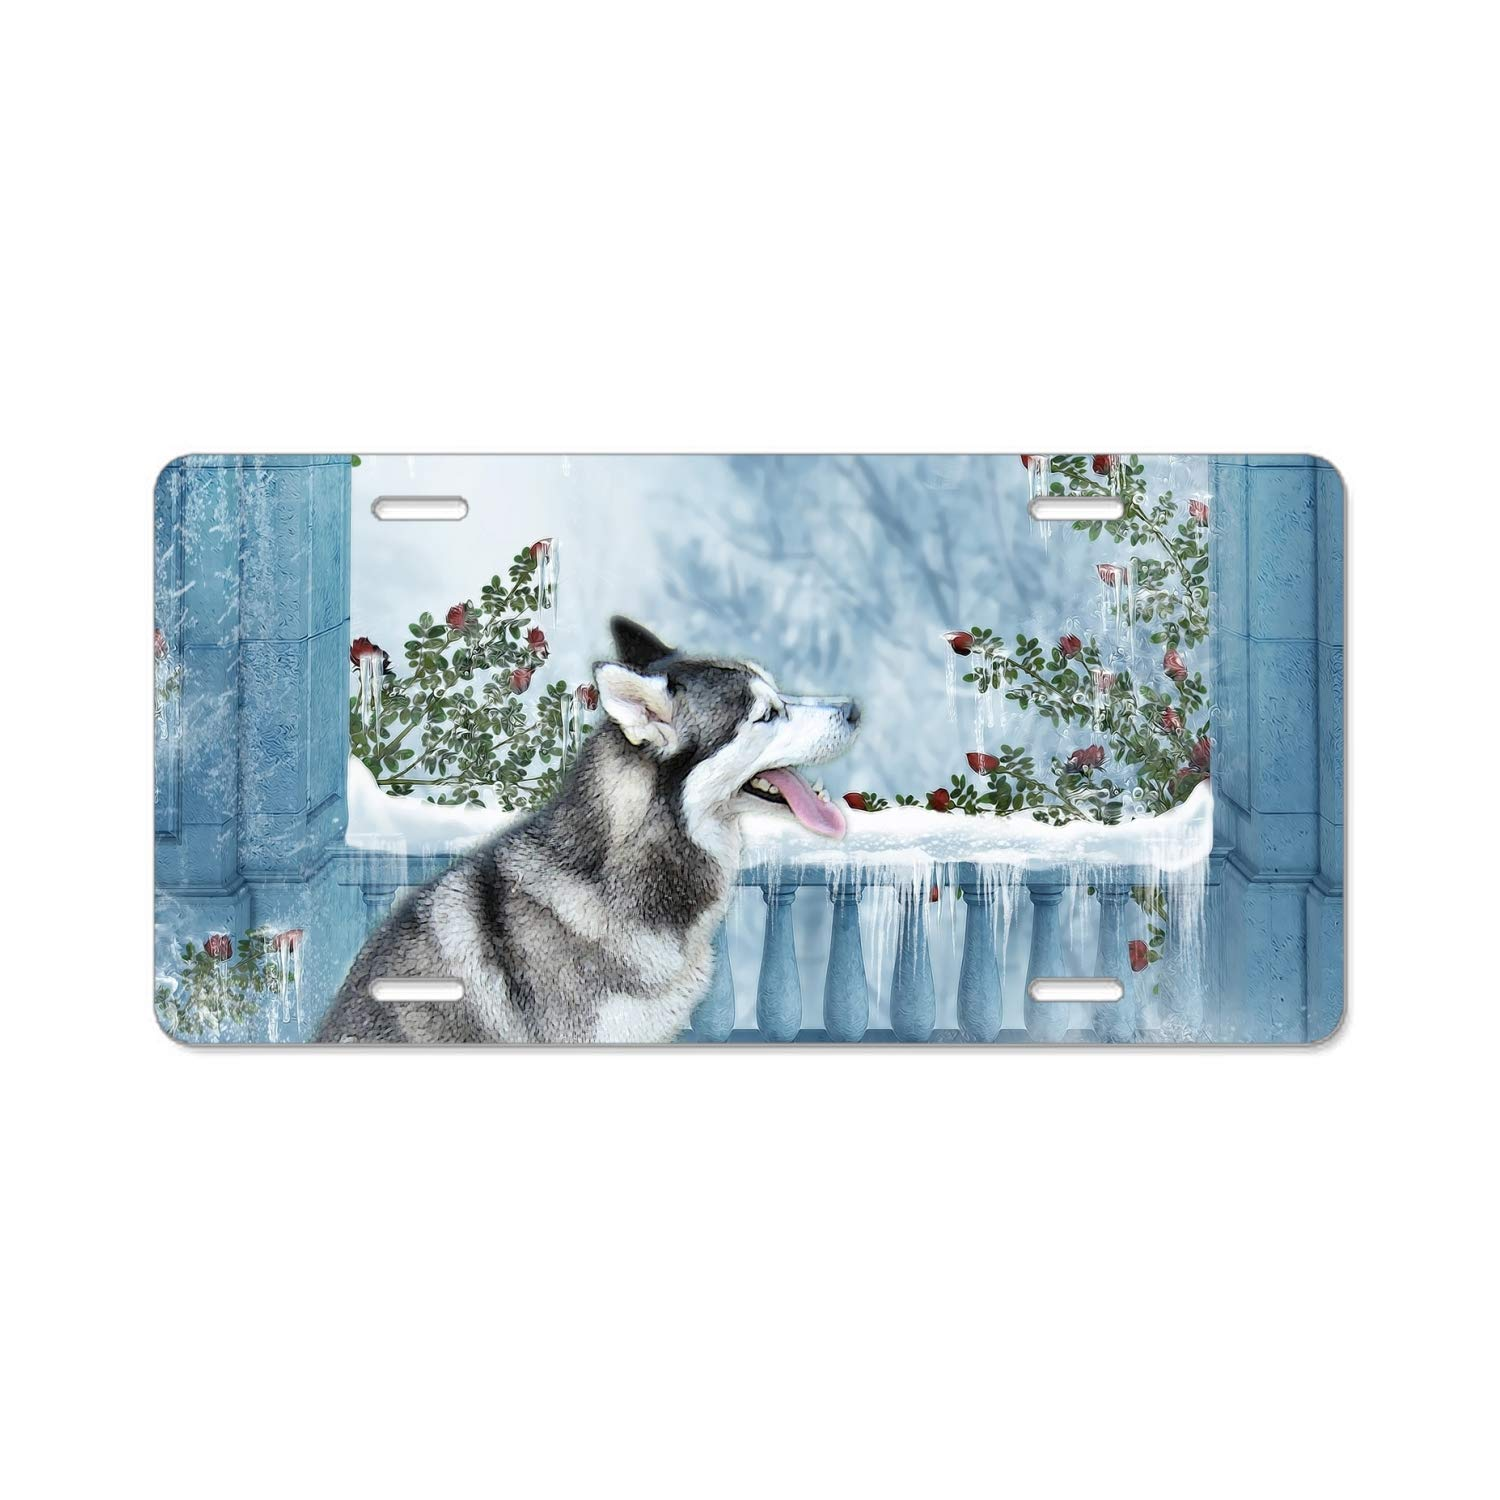 SFHU Personalized License Plate Frame Golden Retriever in Autumn License Plates Cover